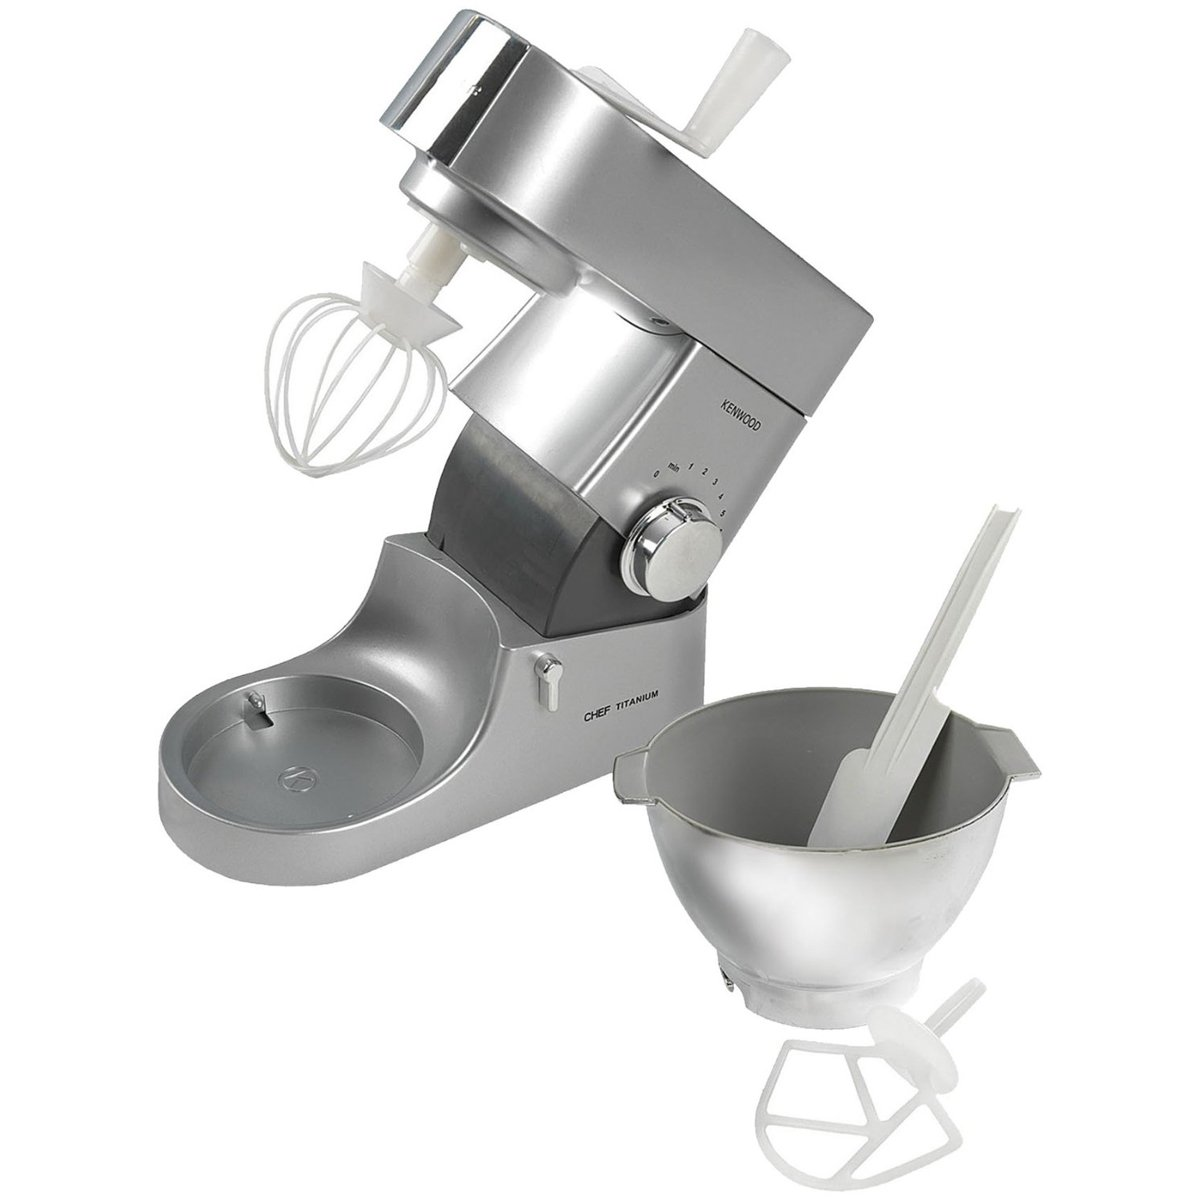 Casdon Little Cook 63502 Casdon Kenwood Toy Mixer, Silver/Chrome Effect